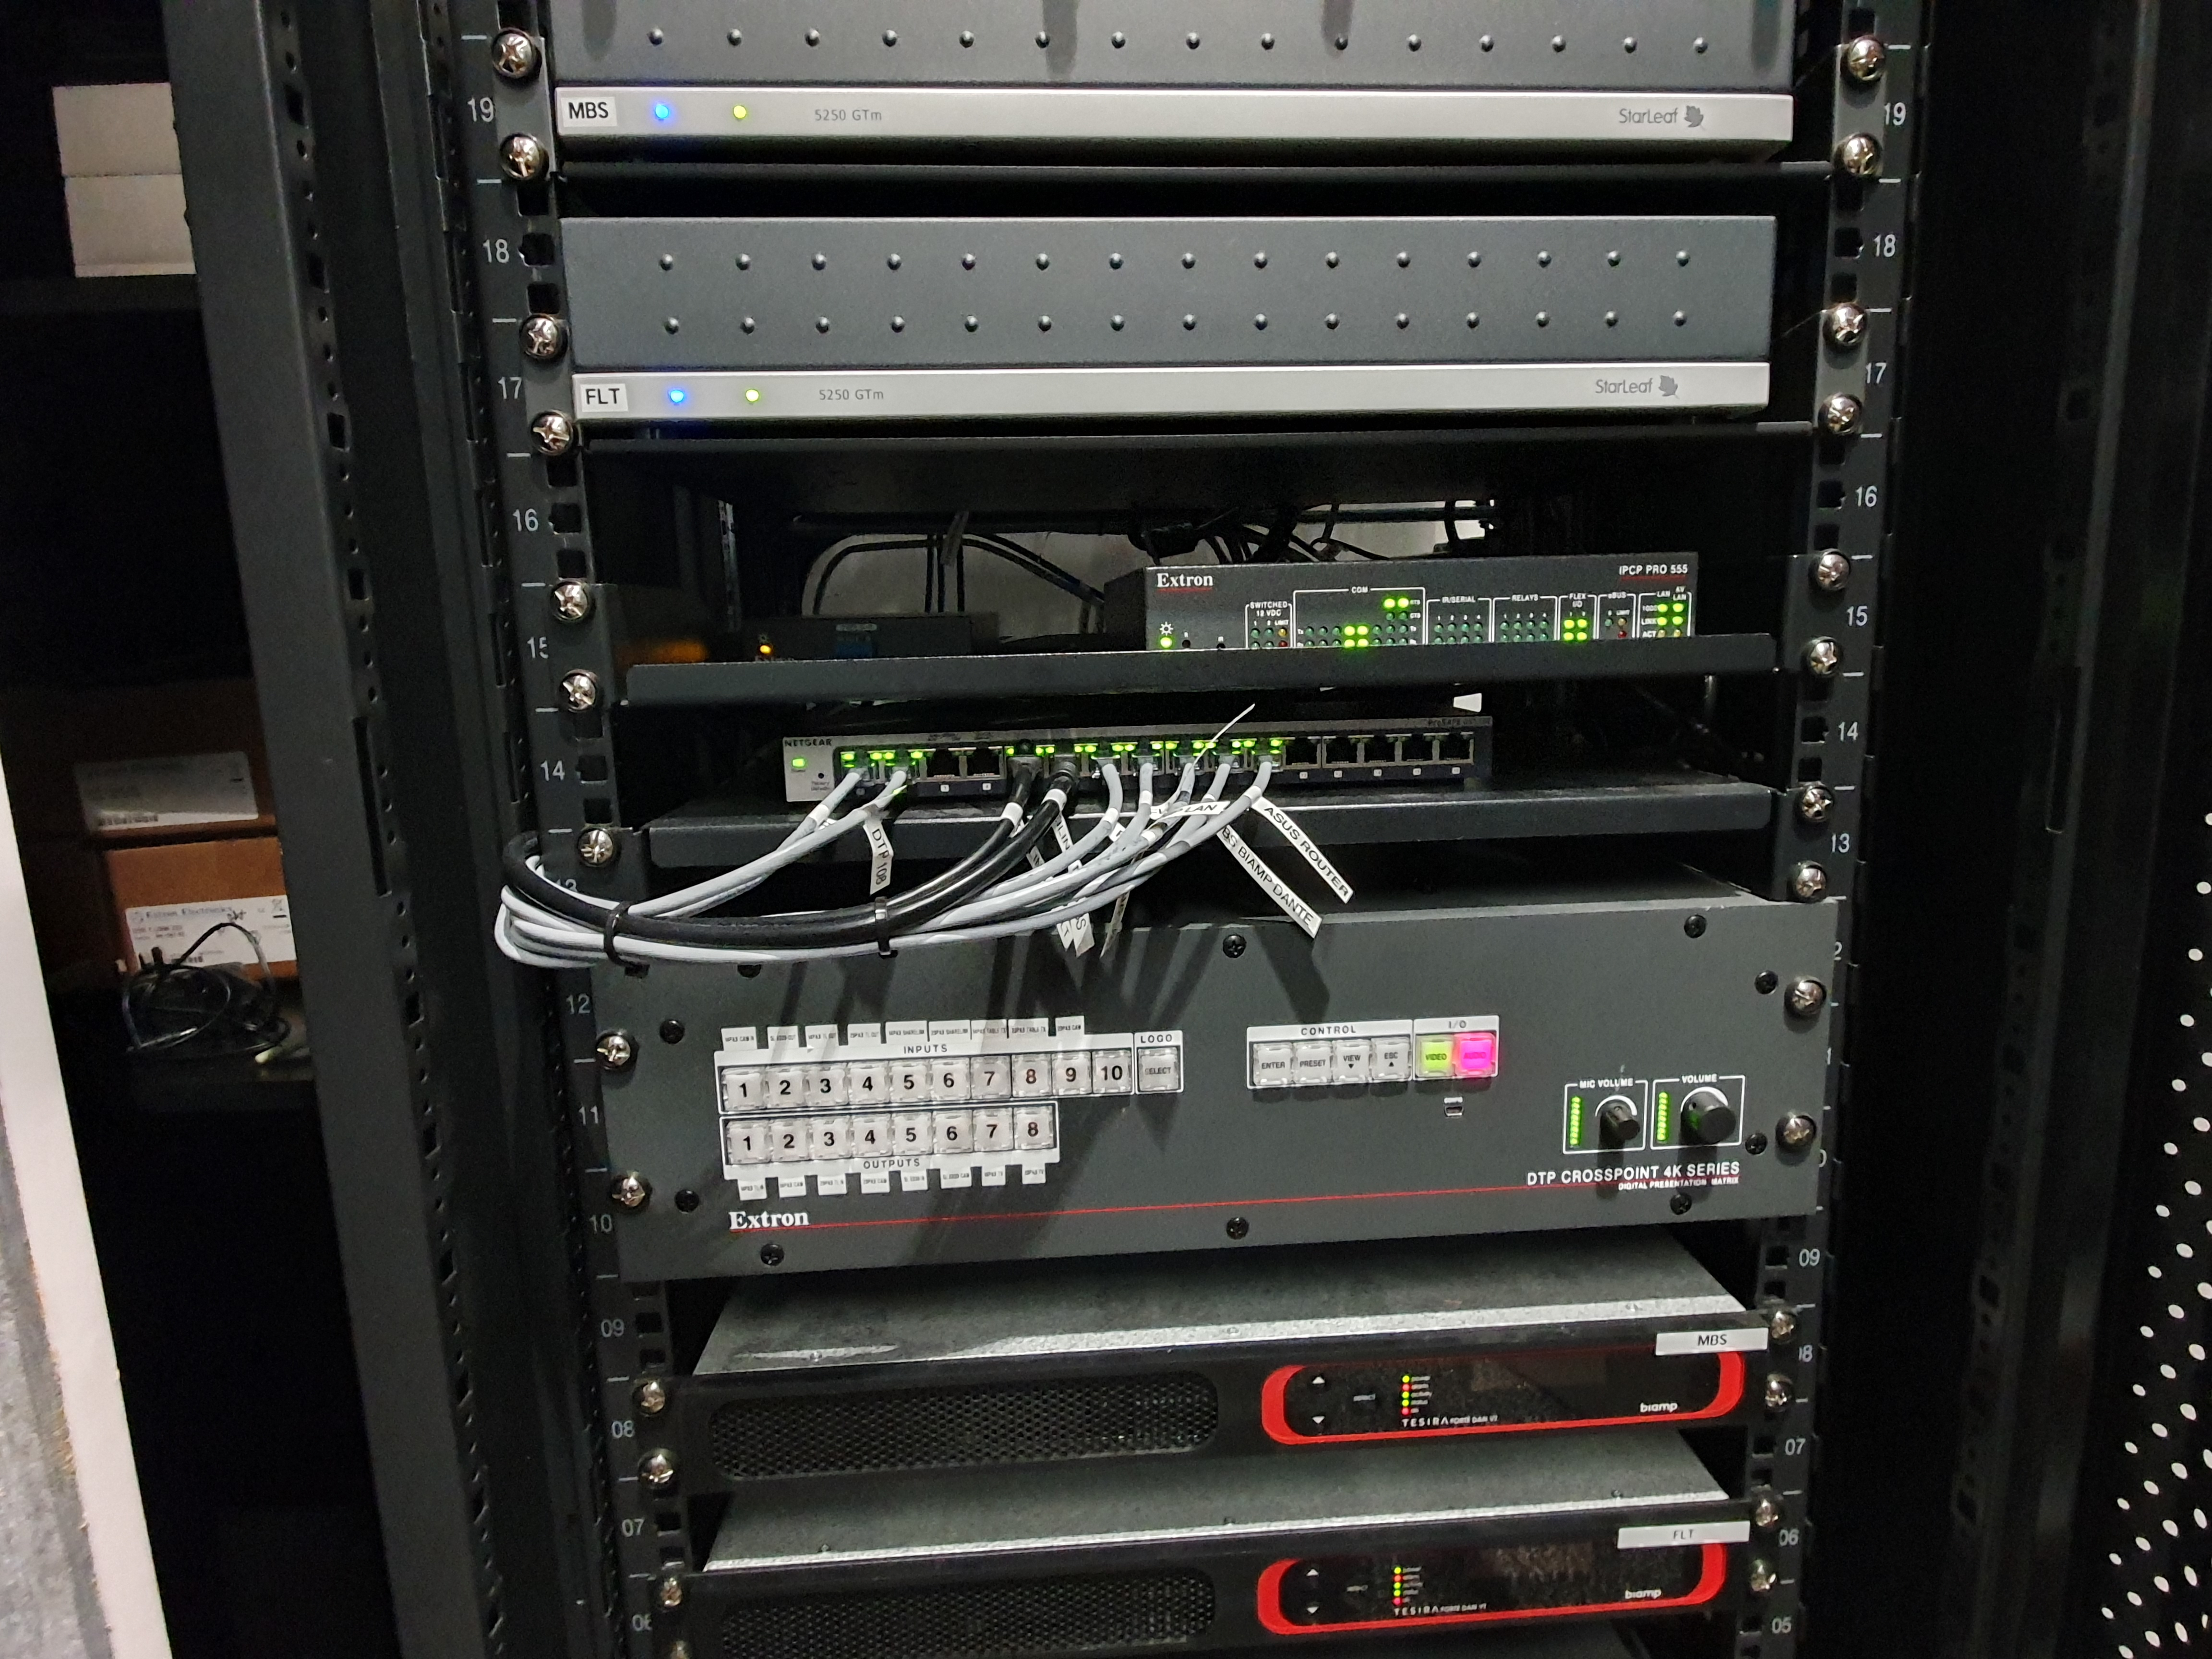 A DTP CrossPoint 108 4K scaling presentation matrix switcher rack-mounted in a back corner of the 20-seat conference room provides AV and control signal routing within both it and the 14-seat conference room.